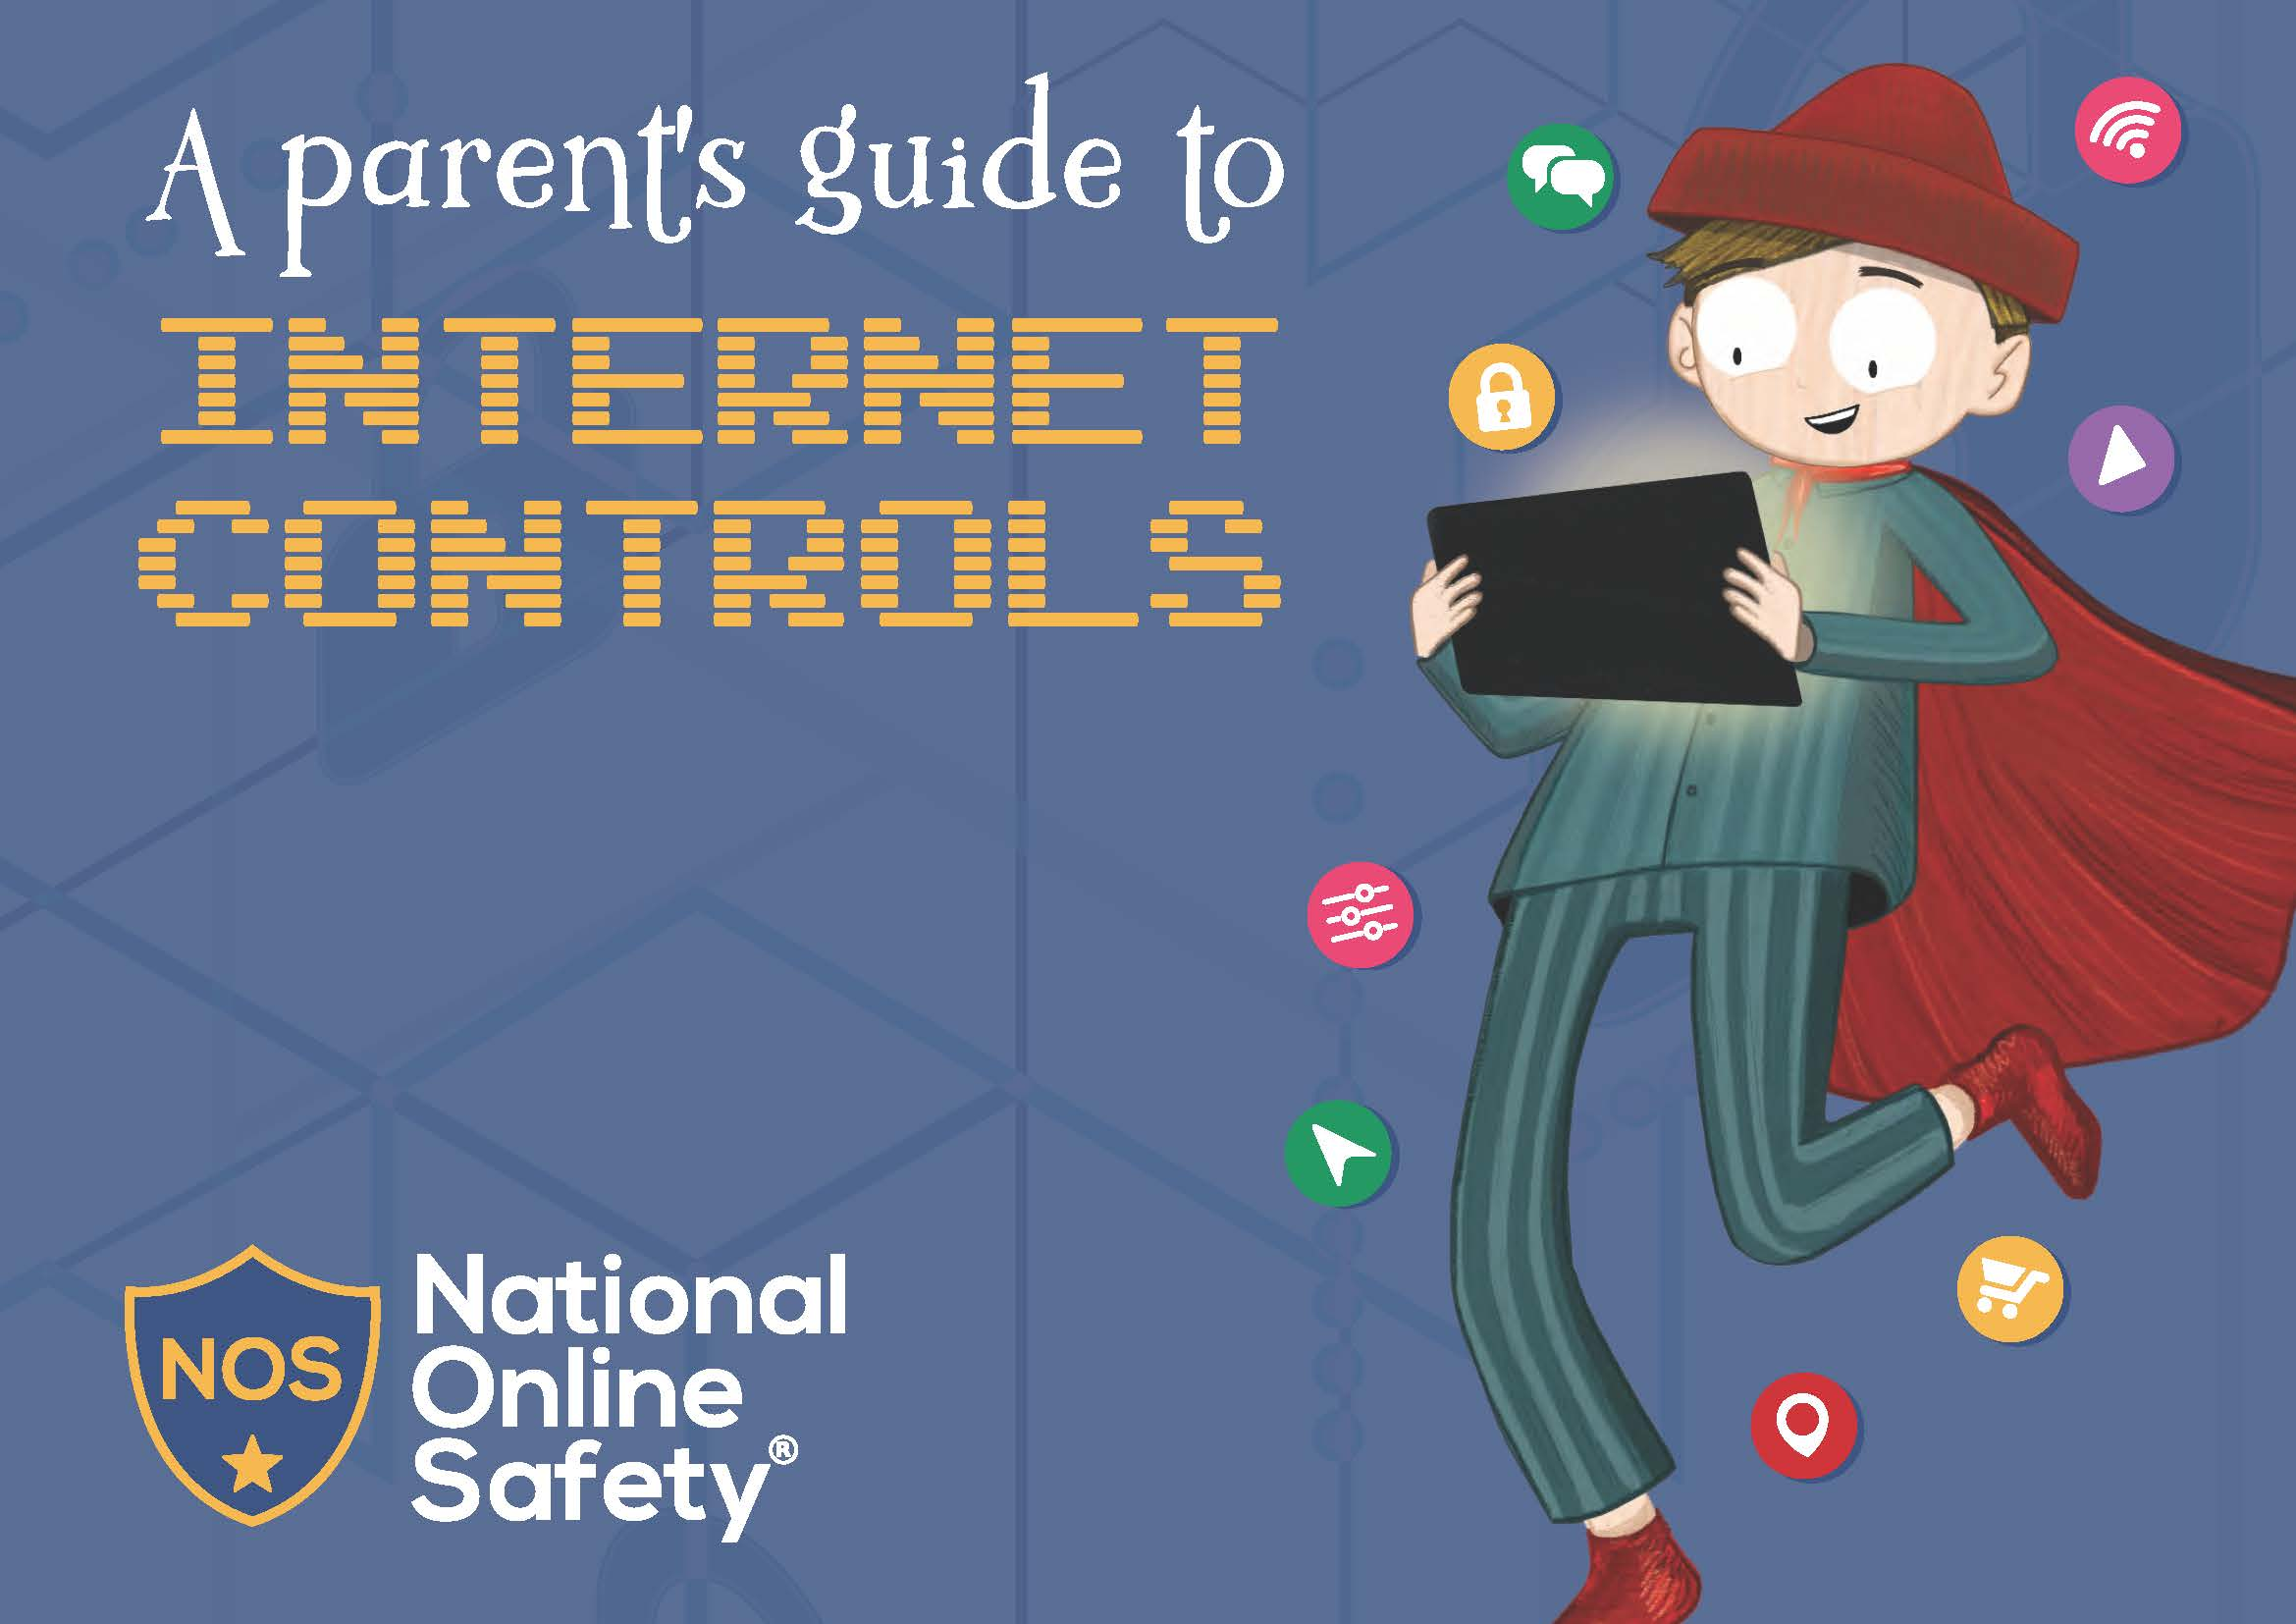 Just one of the guides available for parents from the National Online Safety